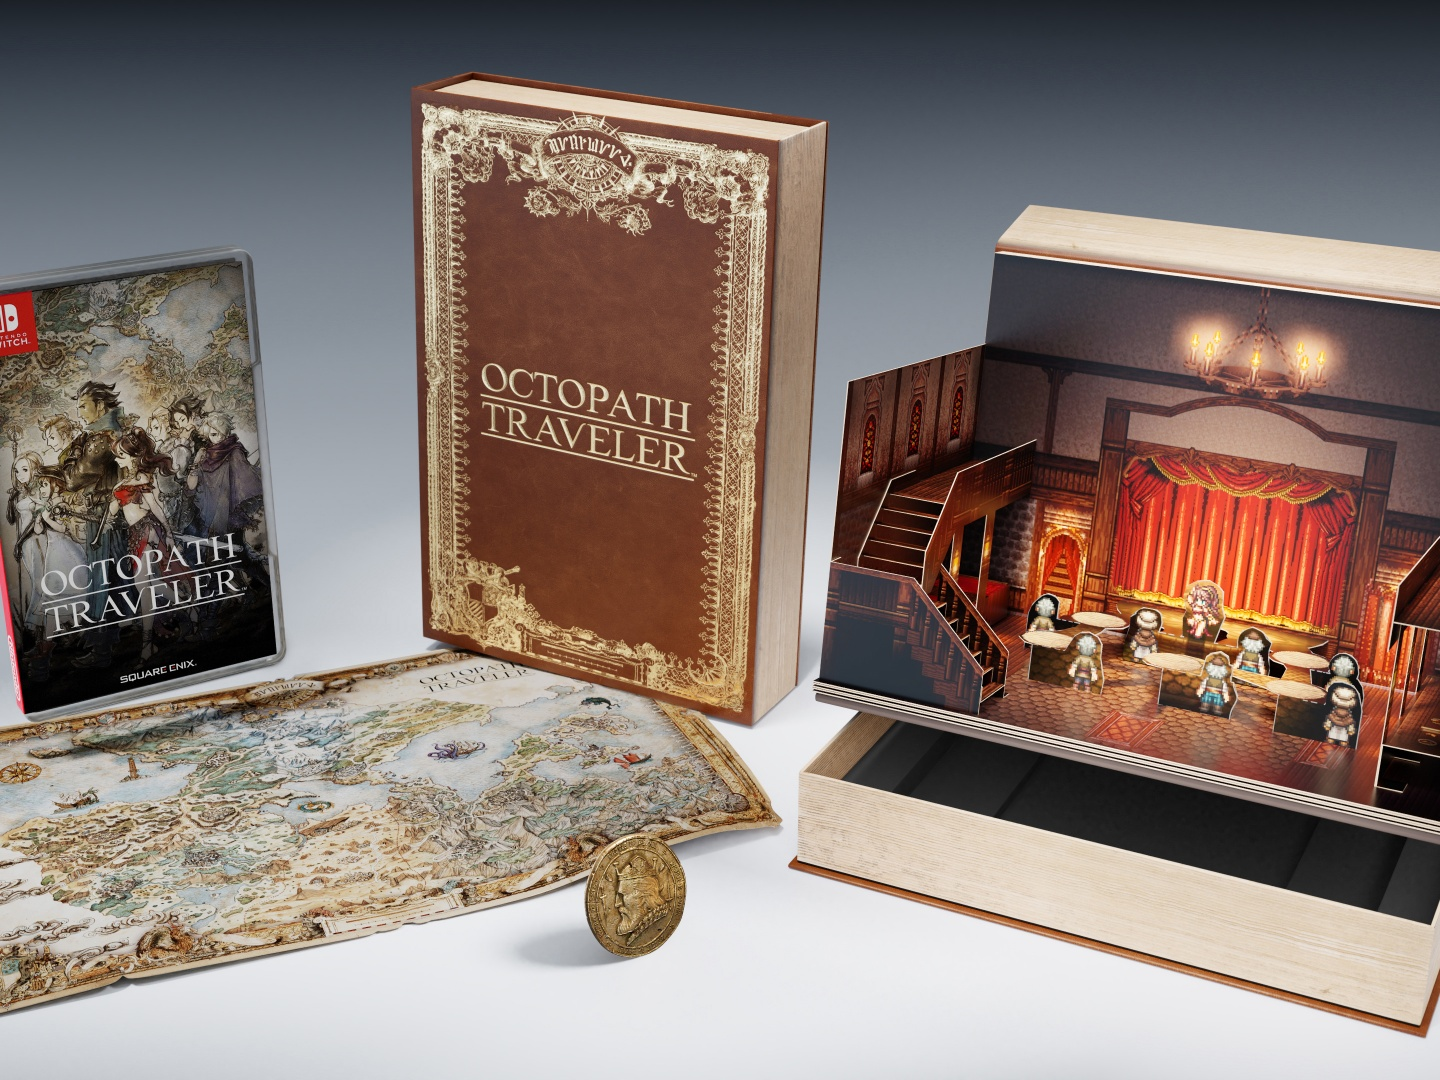 Octopath Traveler Compendium edition, Nintendo Switch, Nintendo and Square Enix Japan Thumbnail